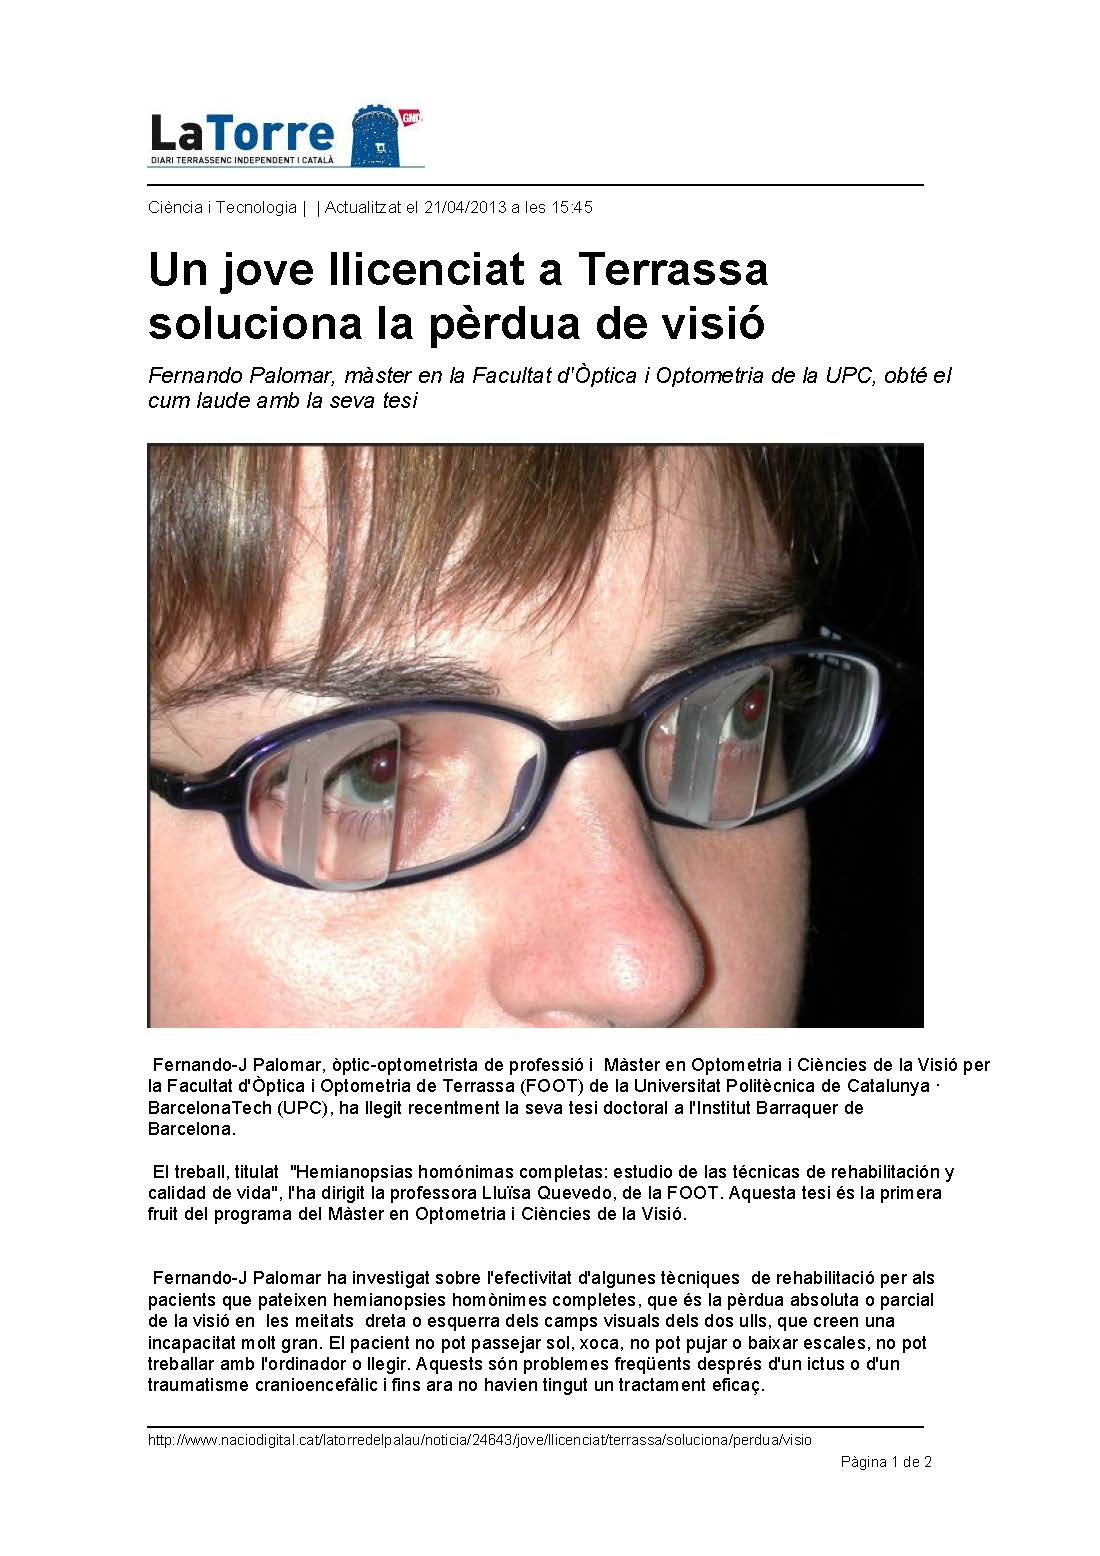 la_torre-noticia_24643_21-04-2013-1_Page_1